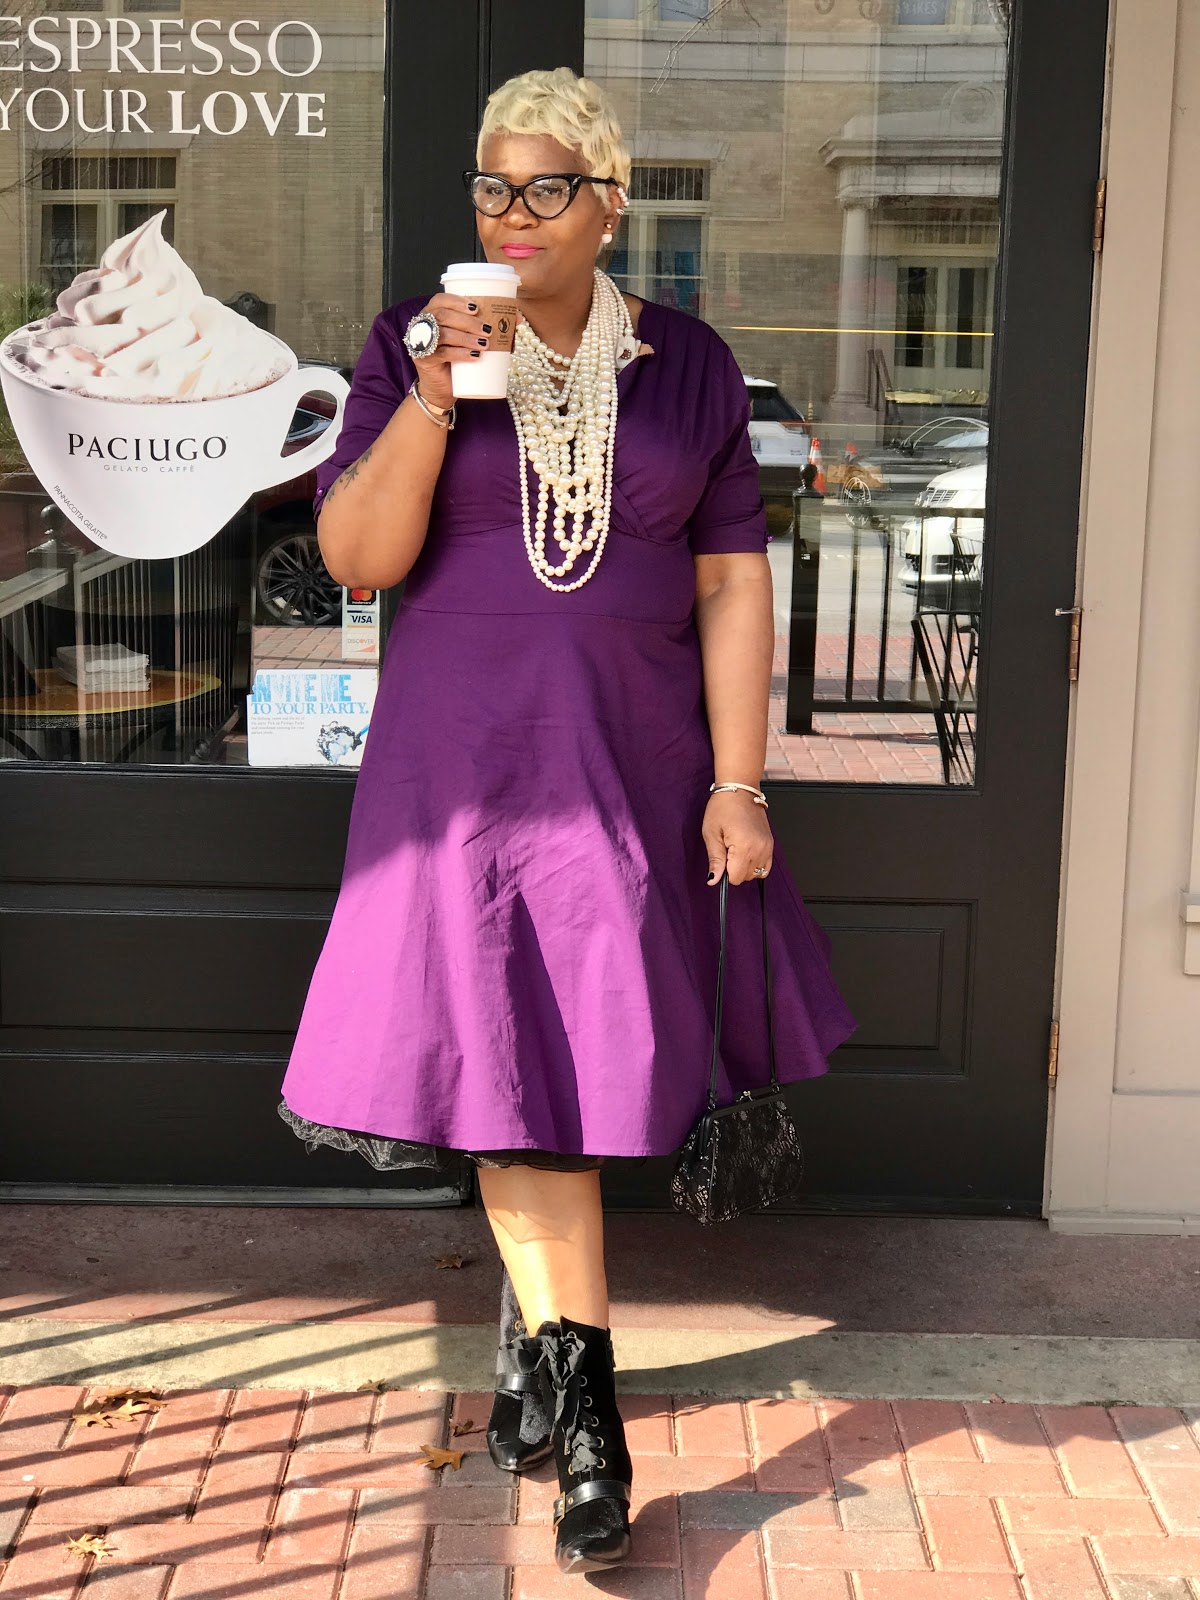 Judge My Style Wedding Day Outfit: Purple Dress, Boots, Pearls, Hand Bag : Wedding Outfit